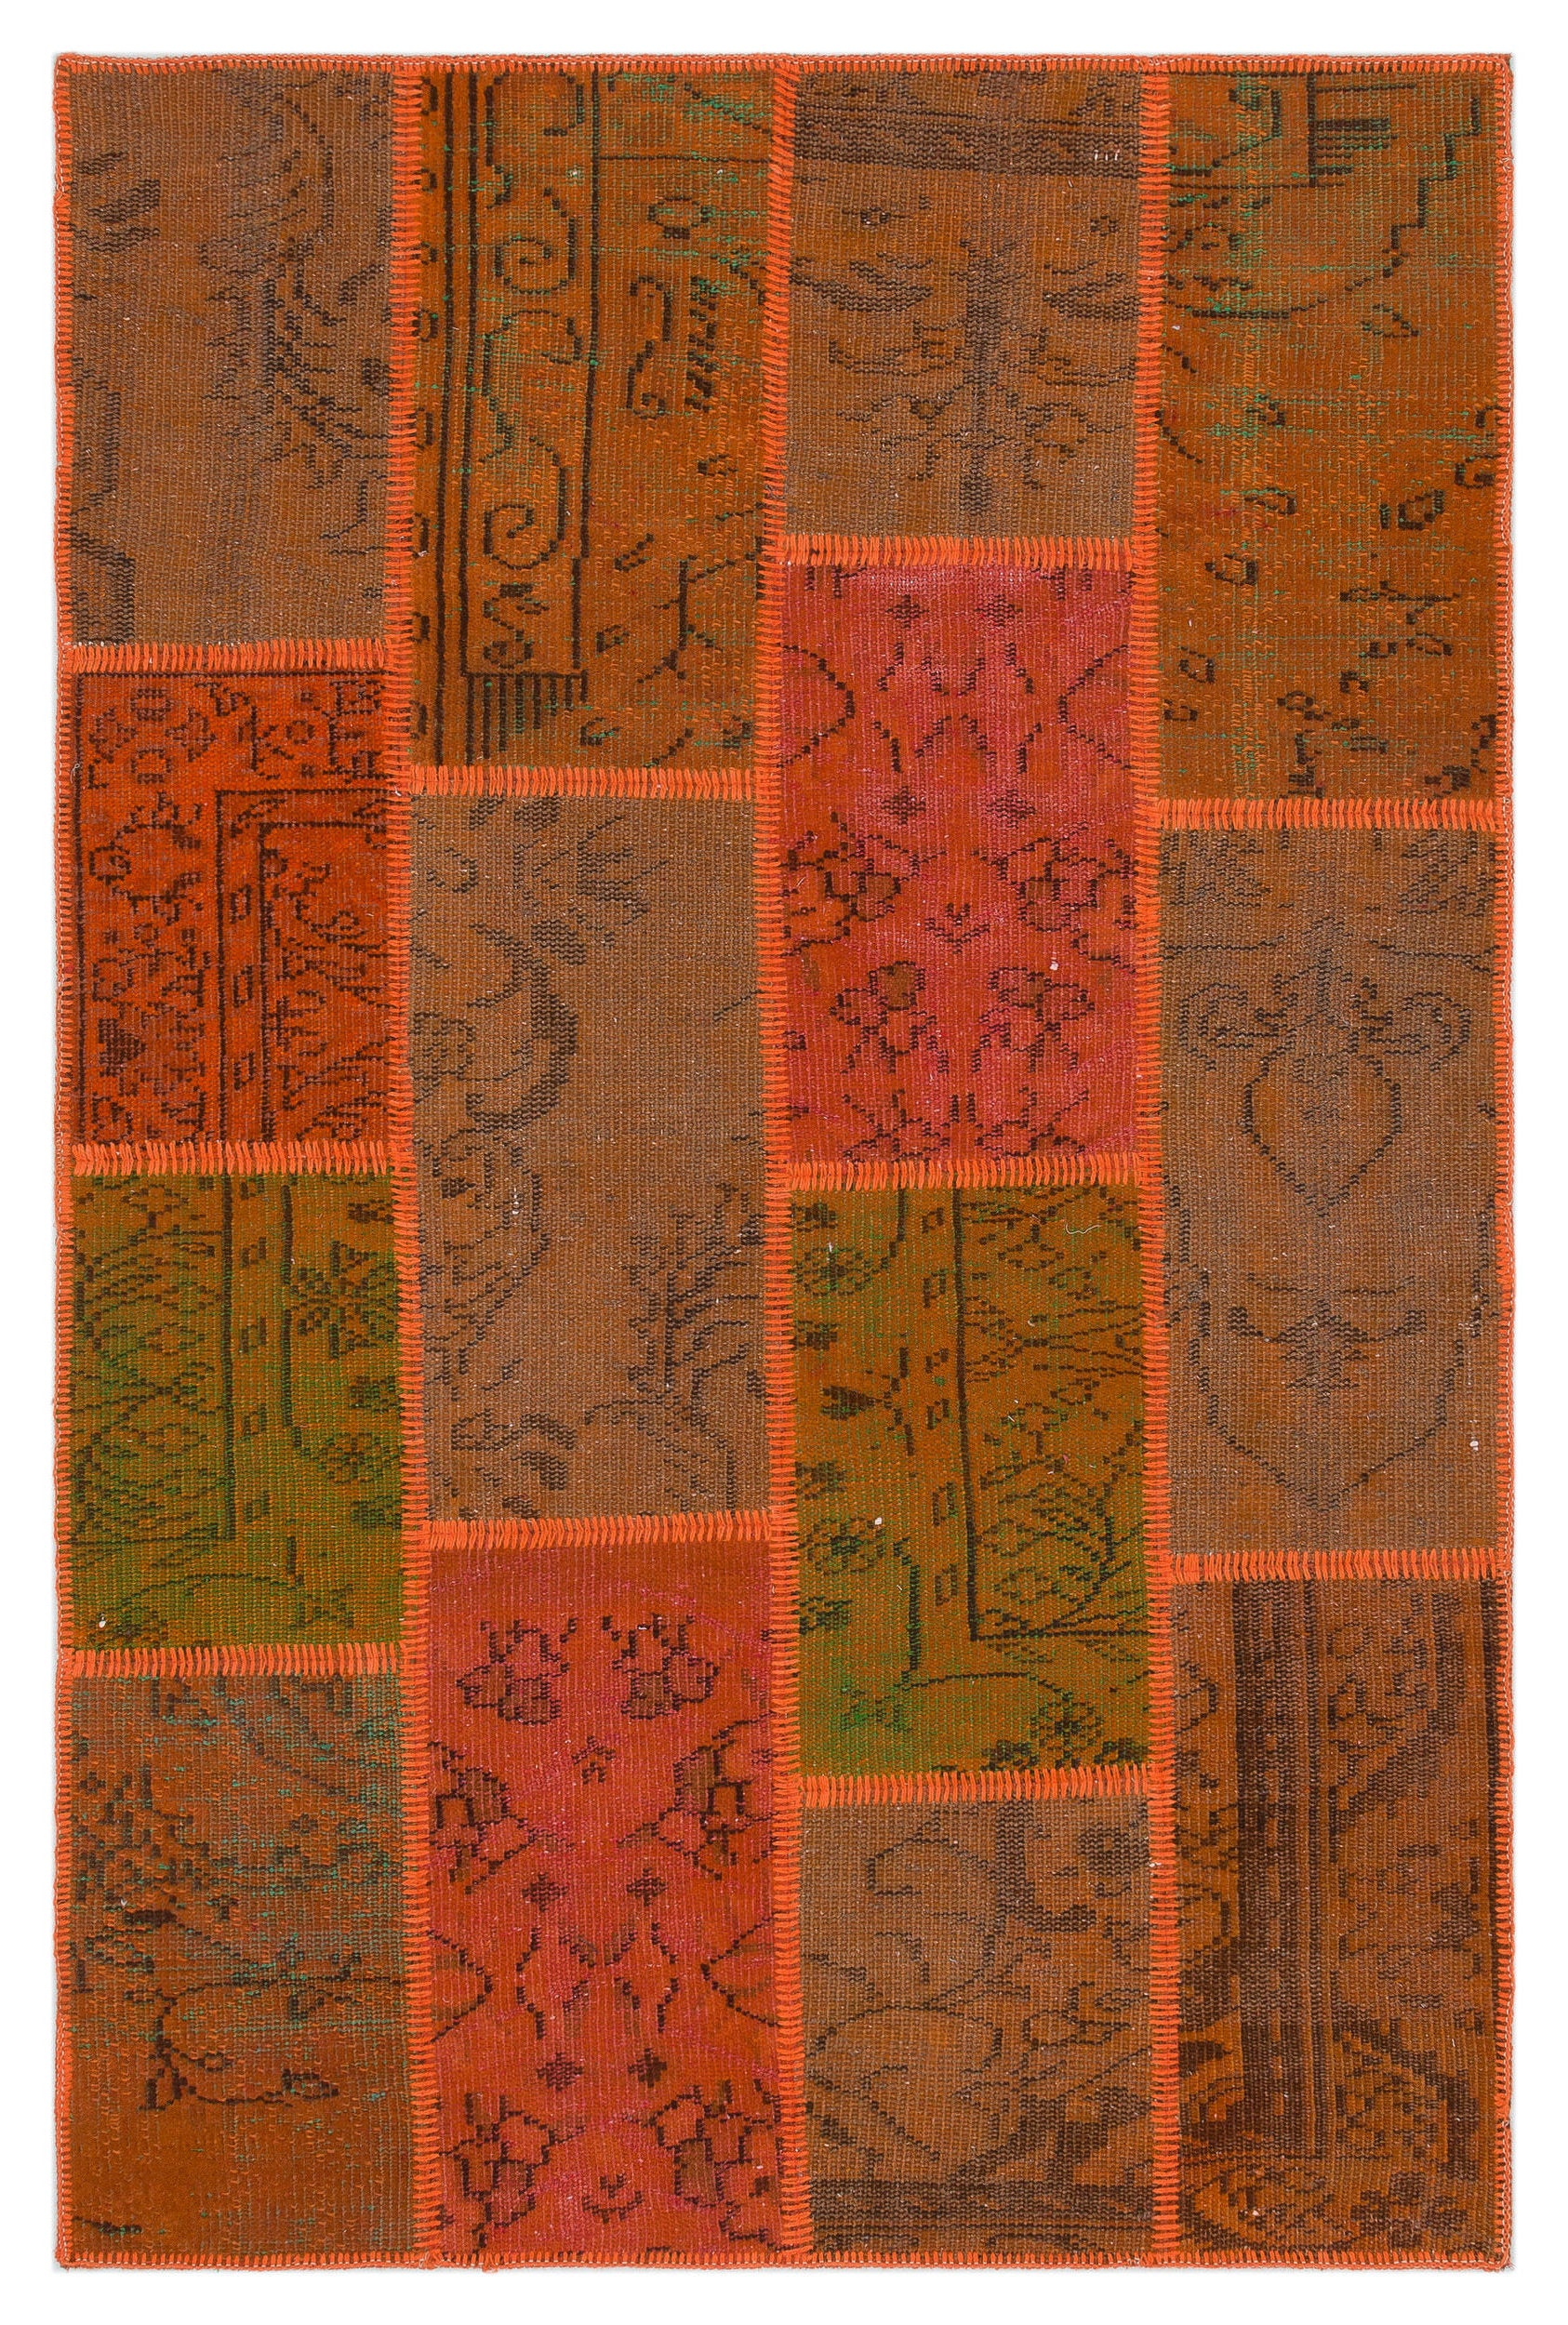 Orange Over Dyed Patchwork Unique Rug 3'11'' x 5'12'' ft 120 x 182 cm